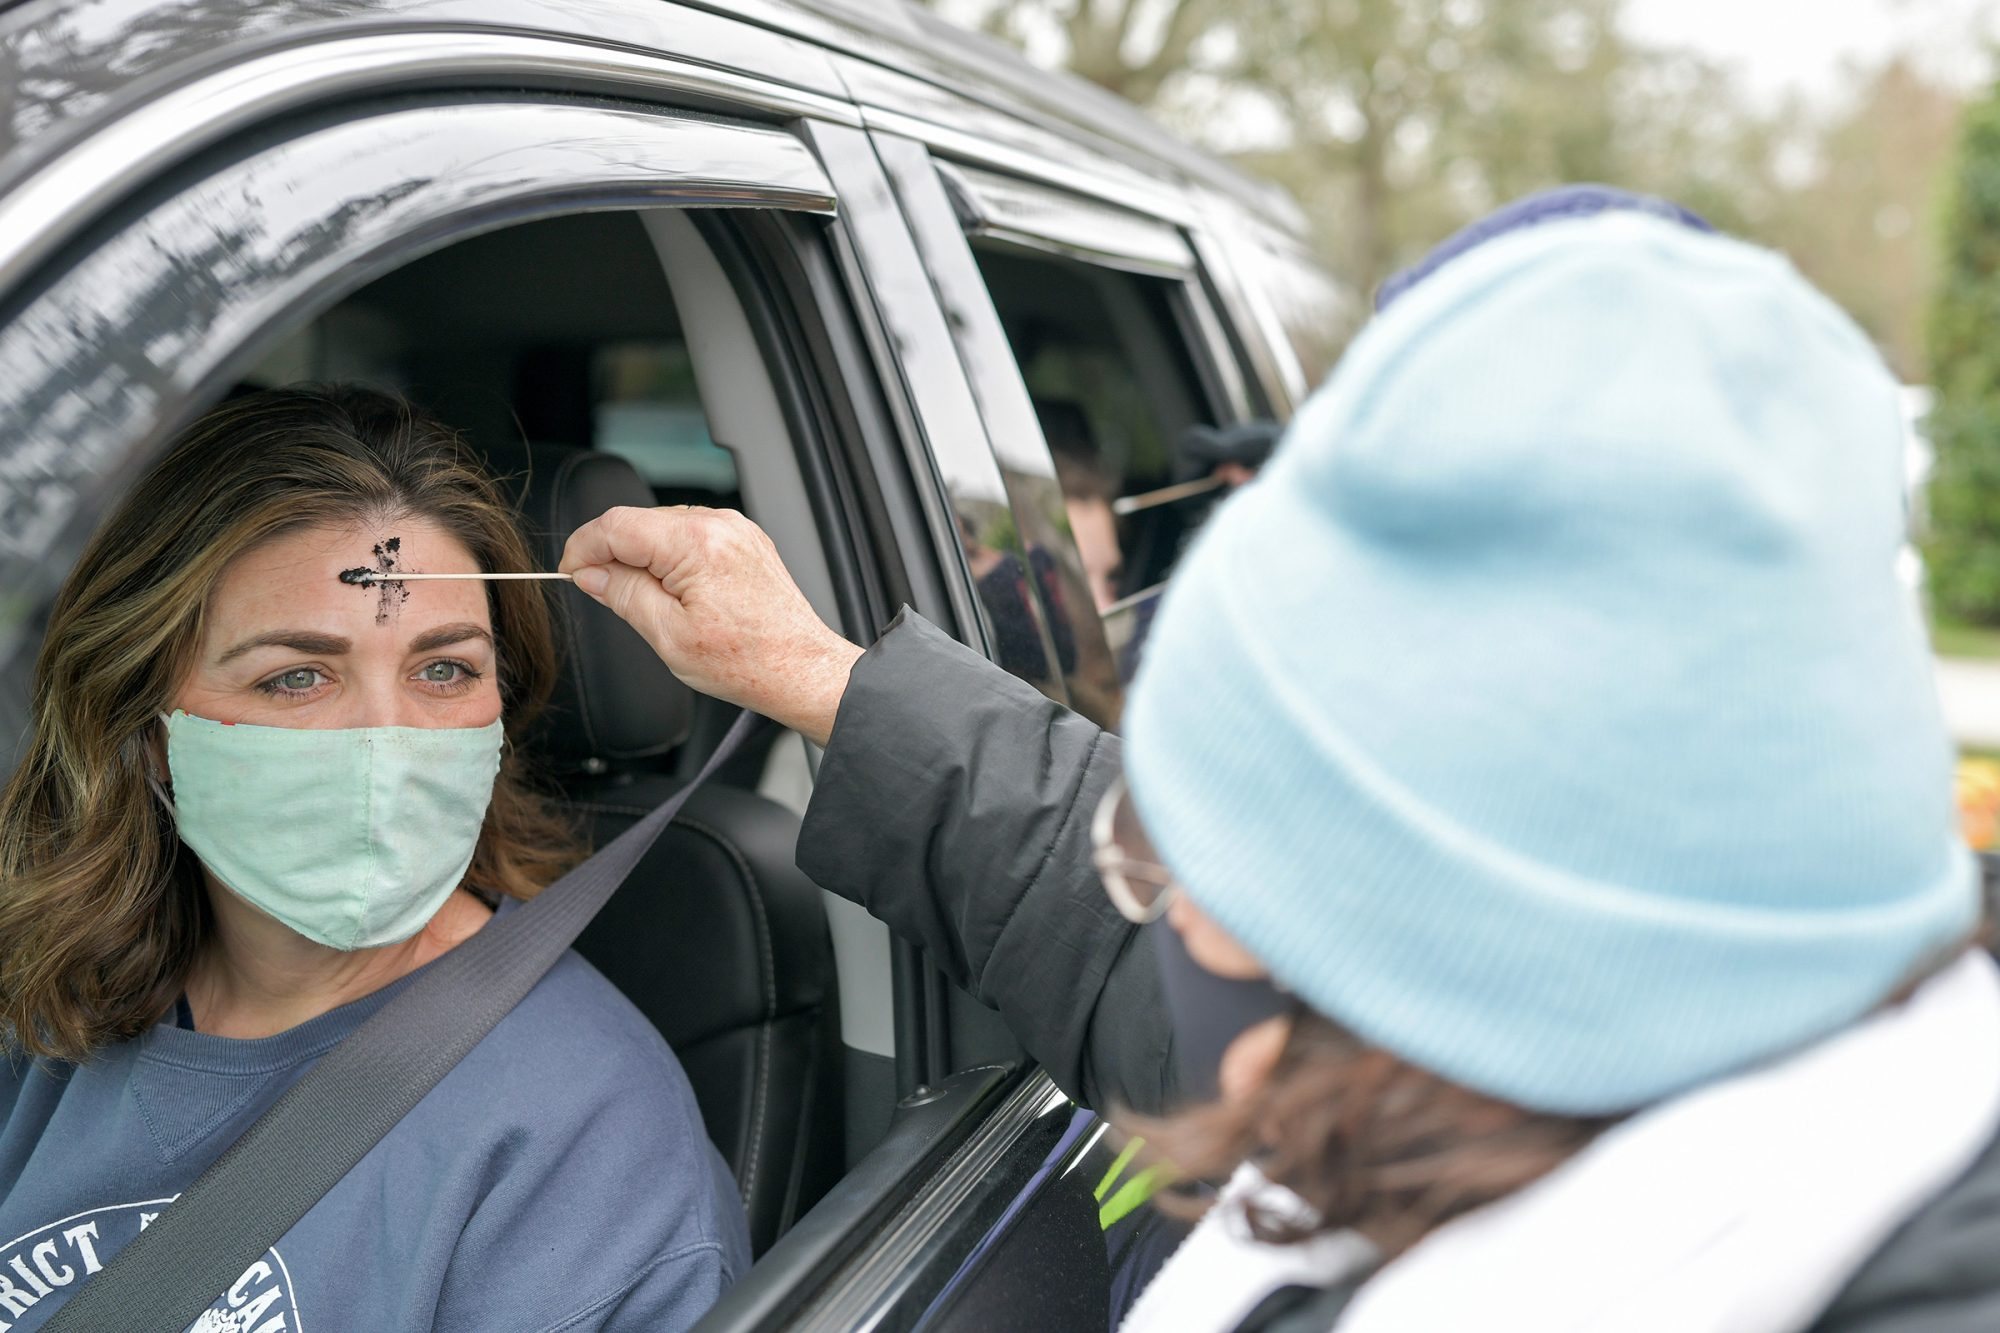 A clergy member from Munholland United Methodist Church spreads ashes on the forehead of a congregant in the drive-thru Ash Wednesday prayer and imposition of ashes on February 17, 2021 in New Orleans, Louisiana